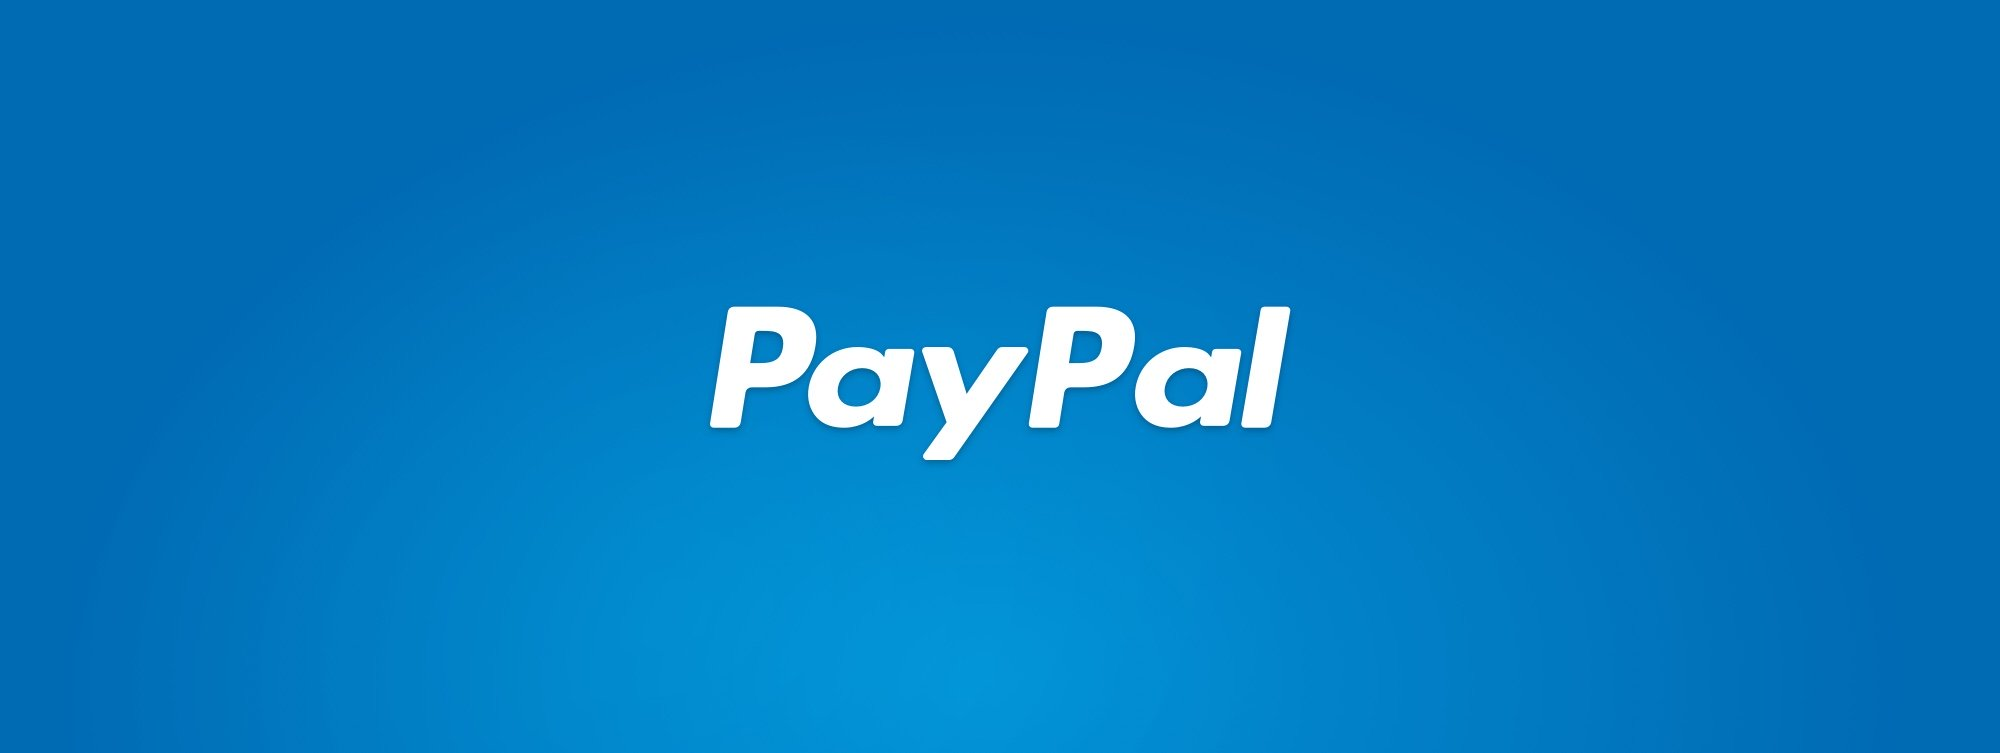 Paypal gifts merchandise